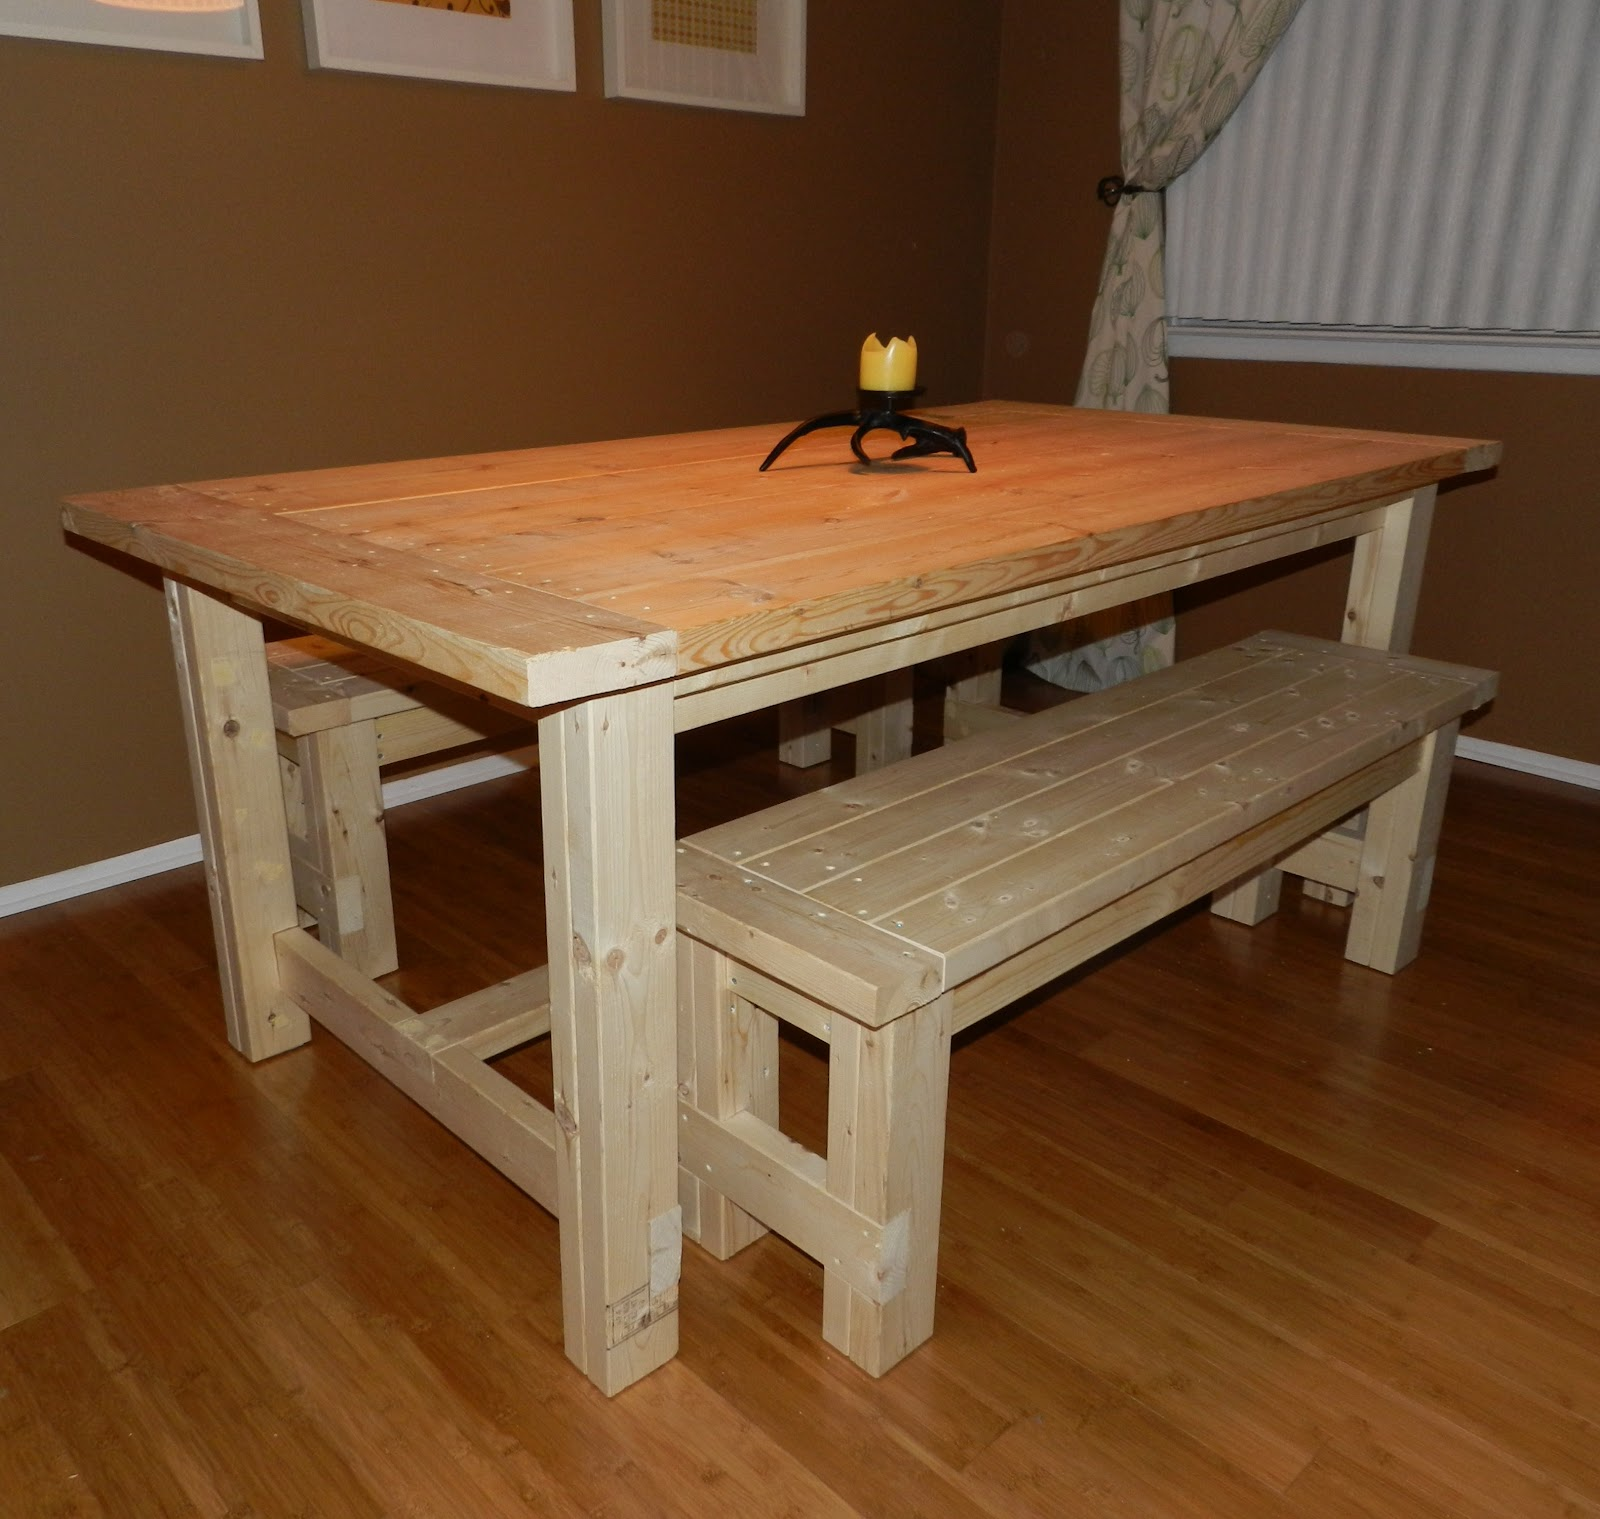 DIY Projects: DIY Dining Table